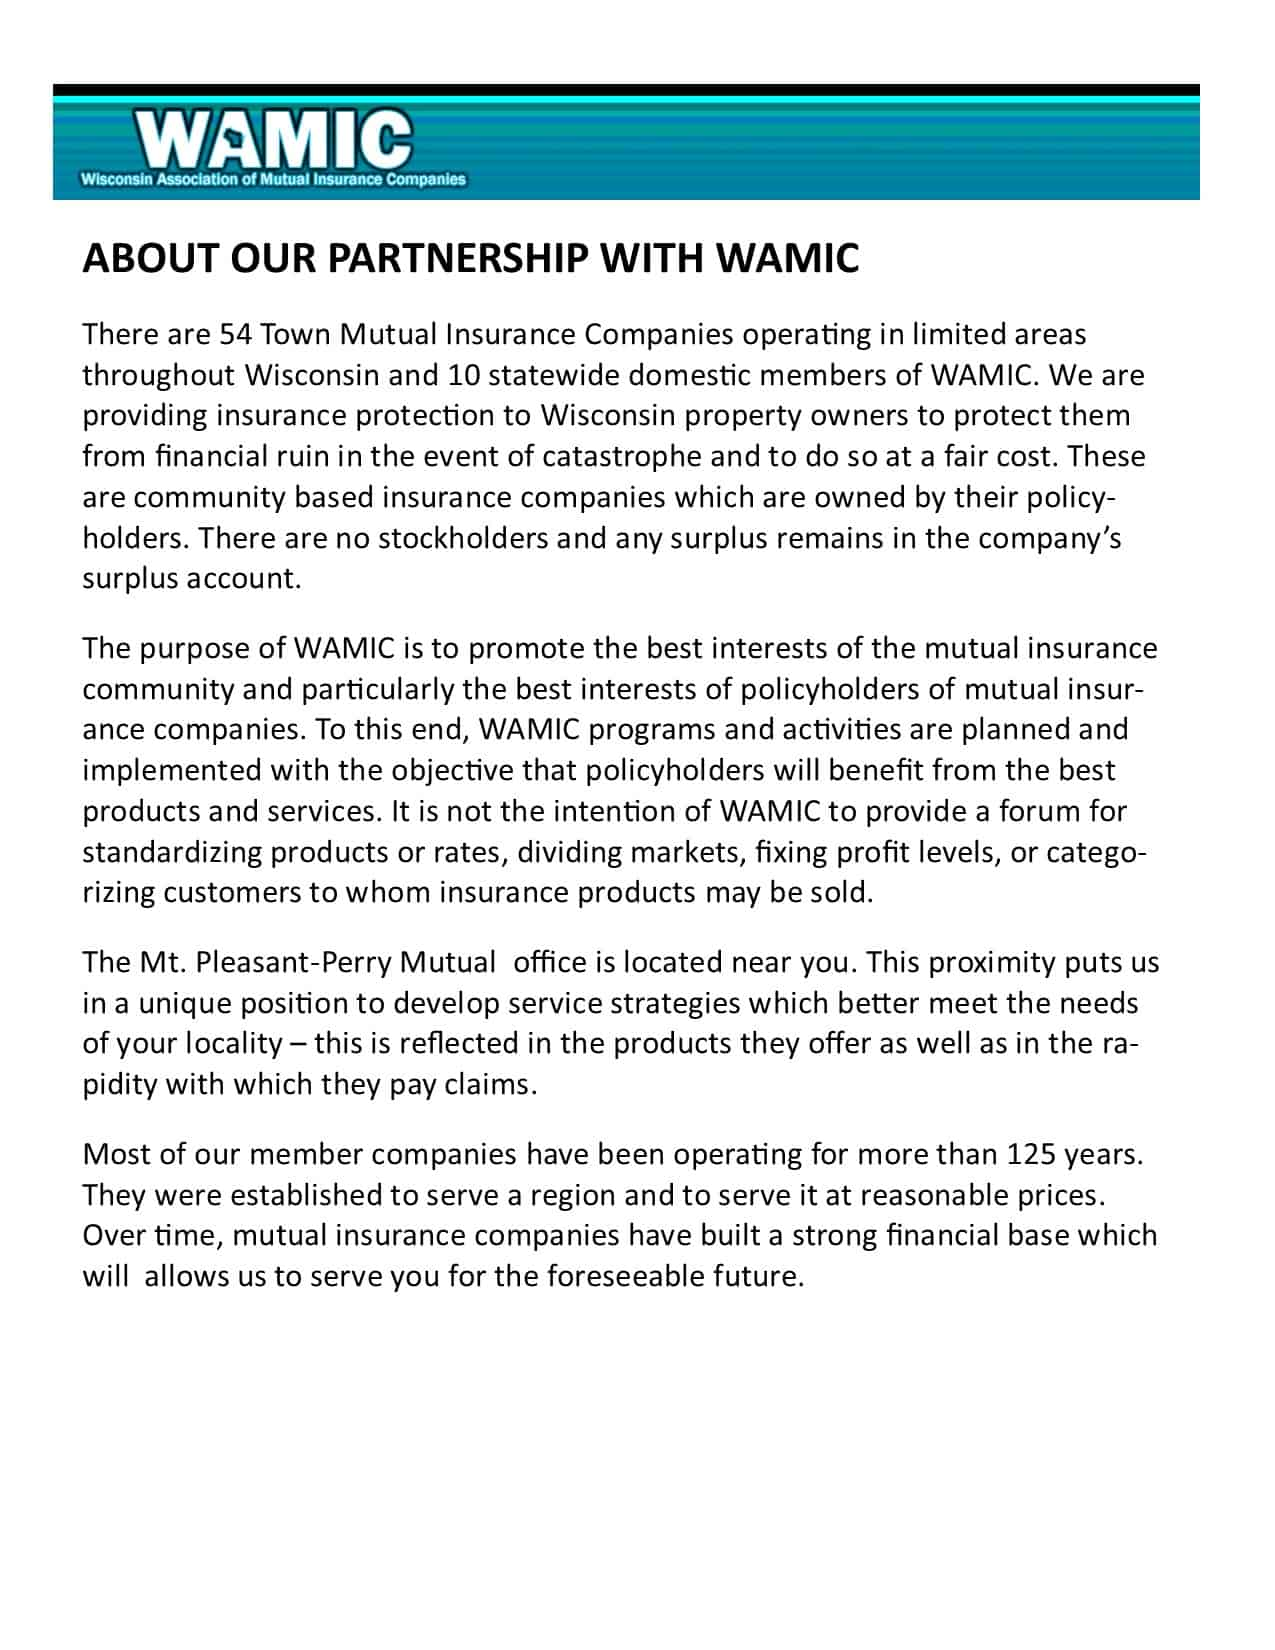 Our Partnership with WAMIC